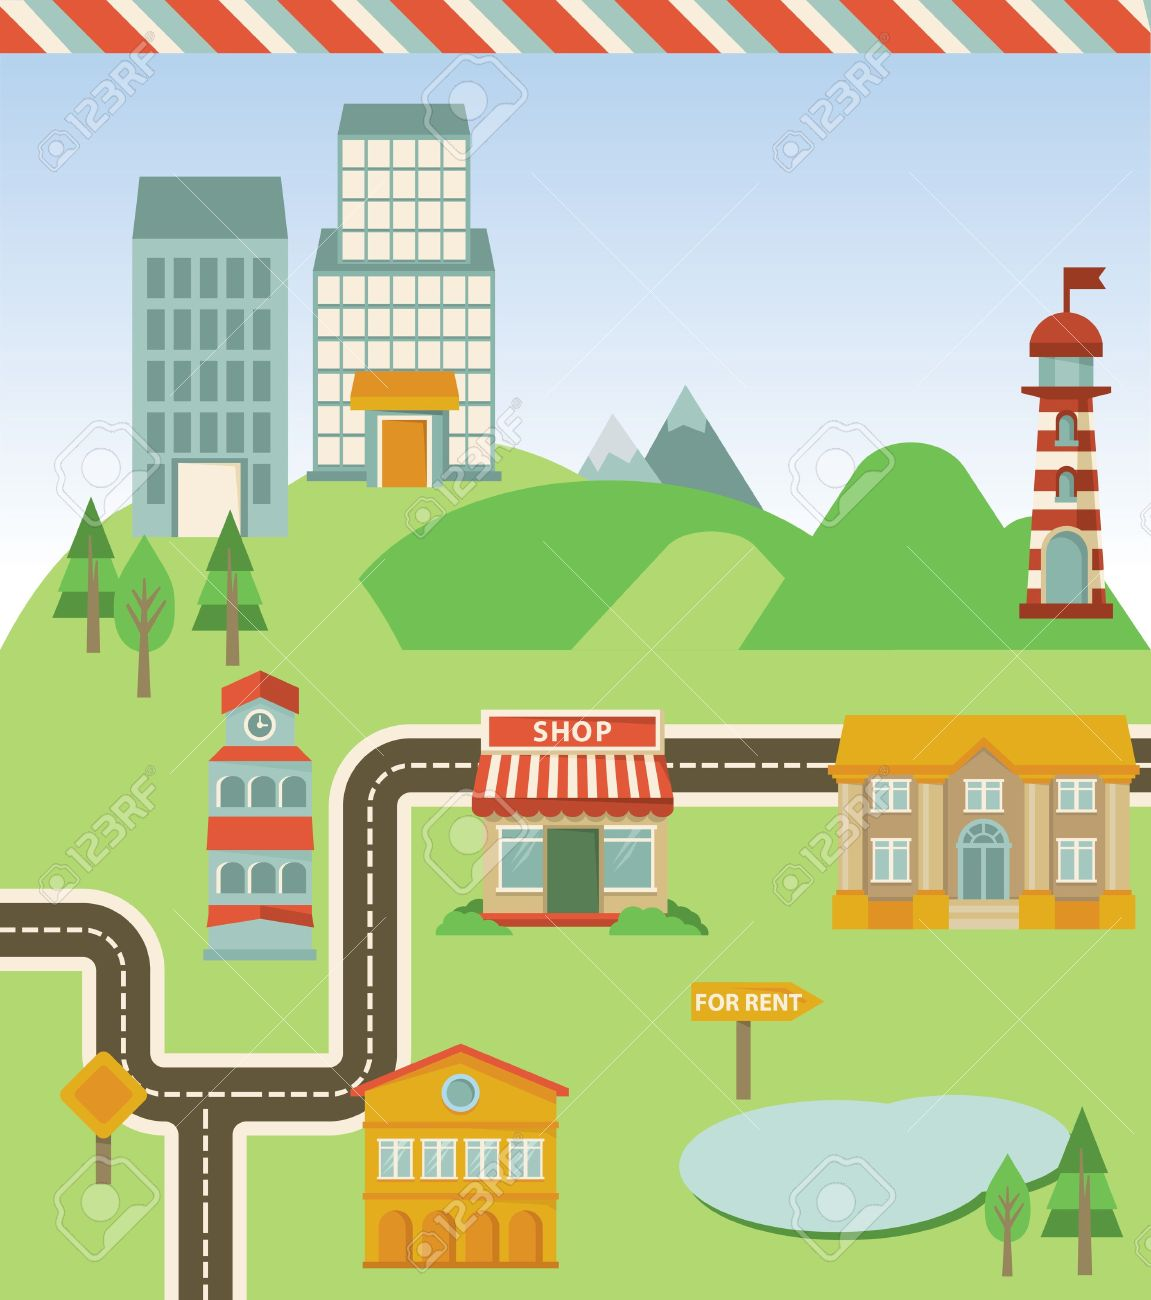 City road map clipart clipart transparent library City road map clipart - ClipartFest clipart transparent library